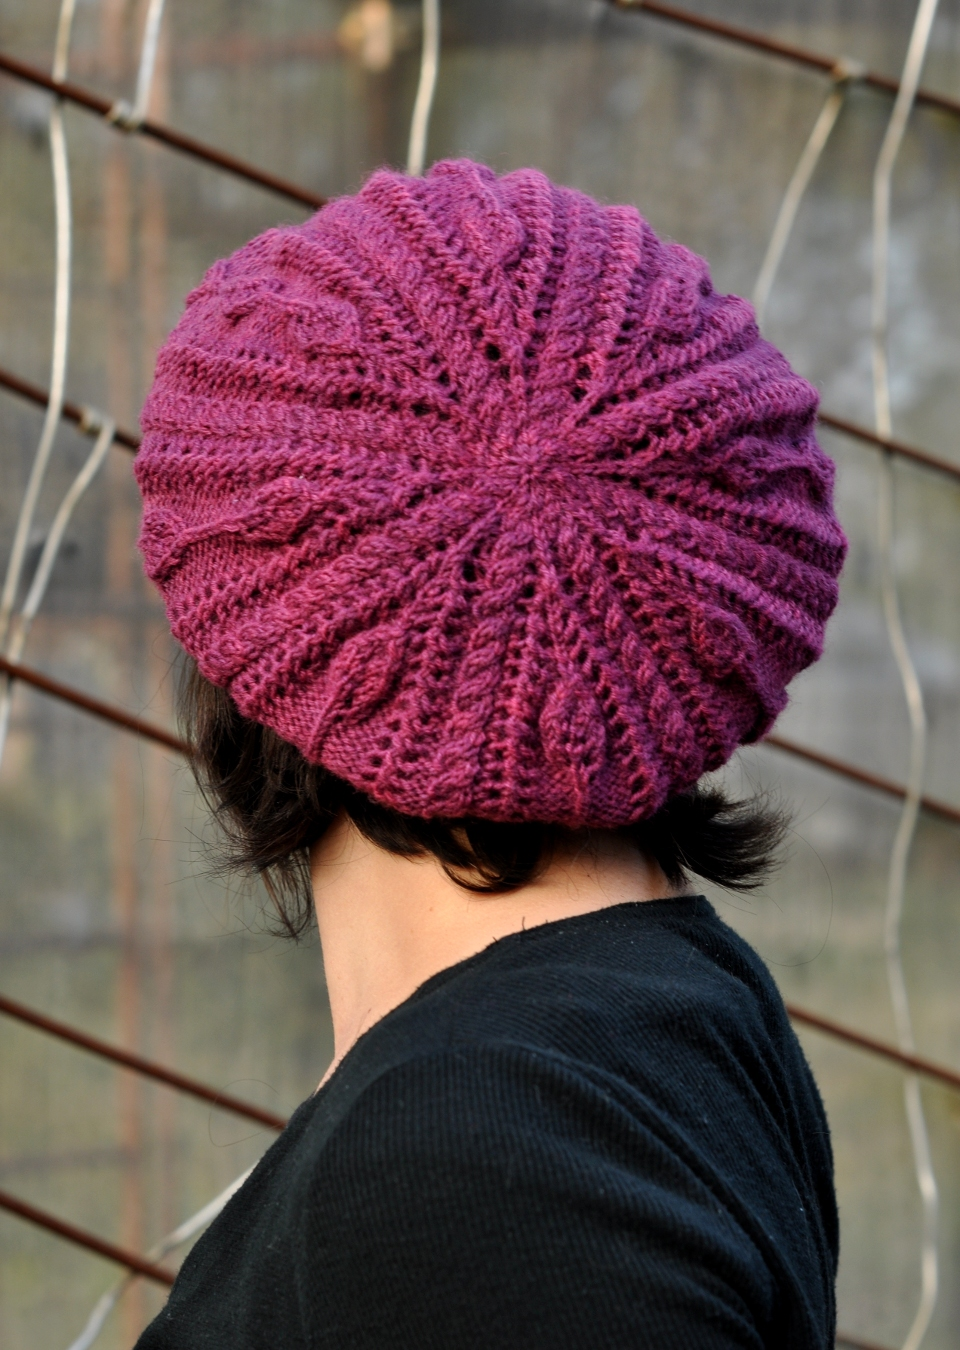 Bellefleur cable & lace beret knitting pattern